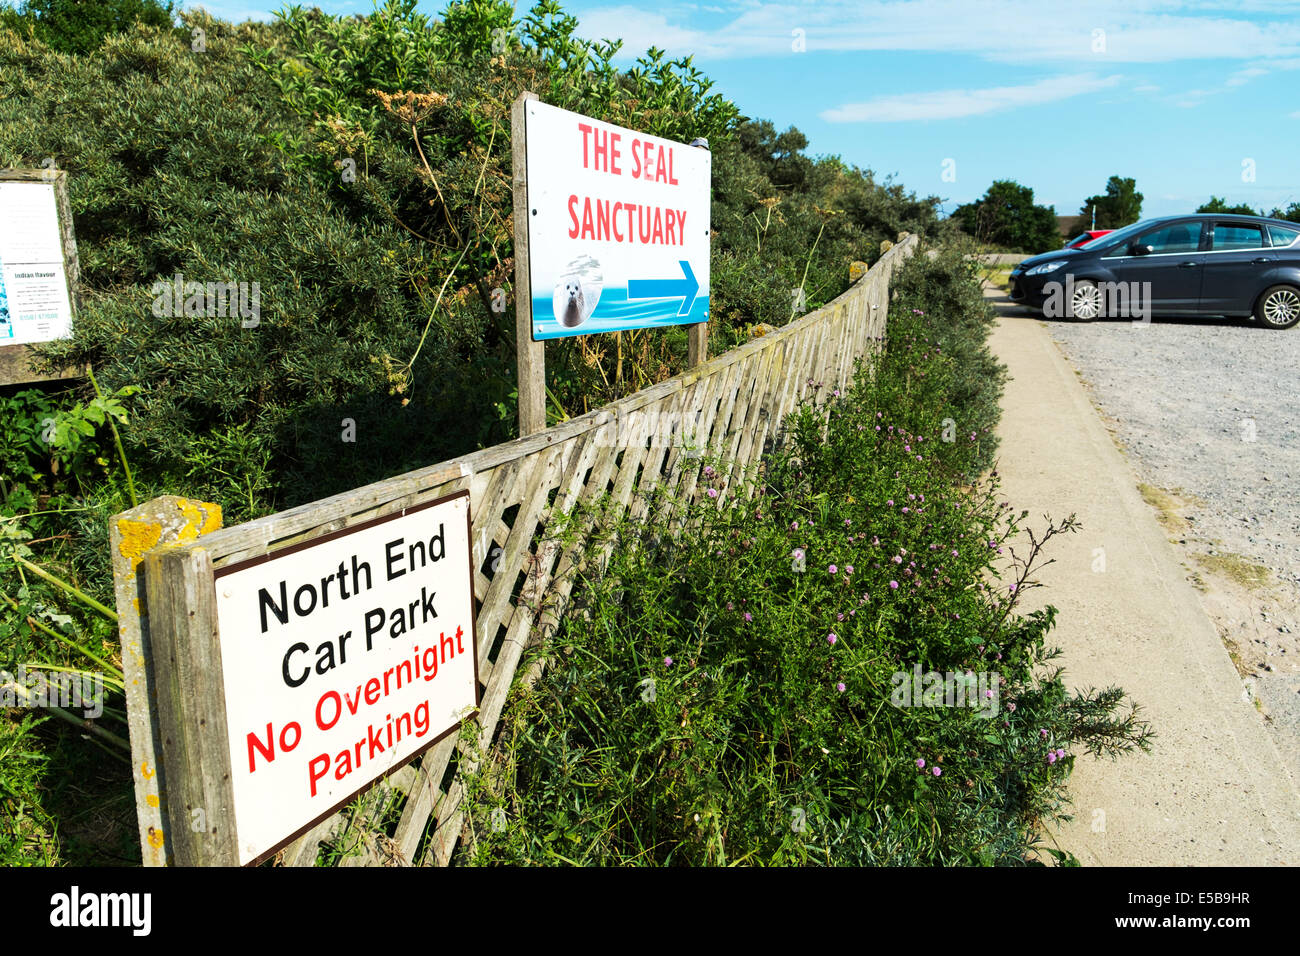 Mablethorpe seal Sanctuary north end car park sign summer - Stock Image